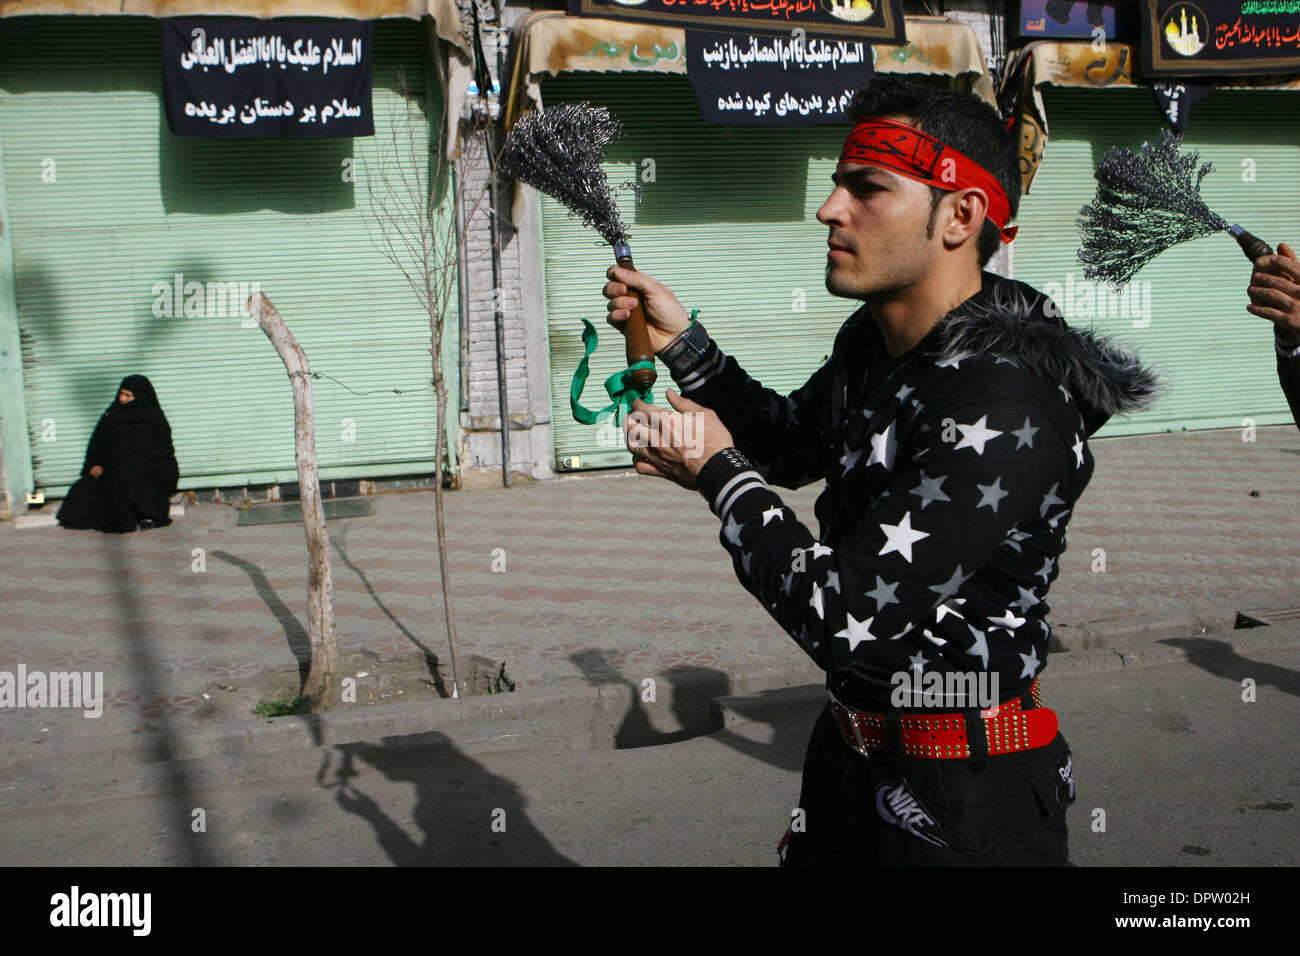 Beat Iron Stock Photos Images Alamy 2009 Feb 16 Tehran Iran Iranian Shiites Muslims Their Shoulders With